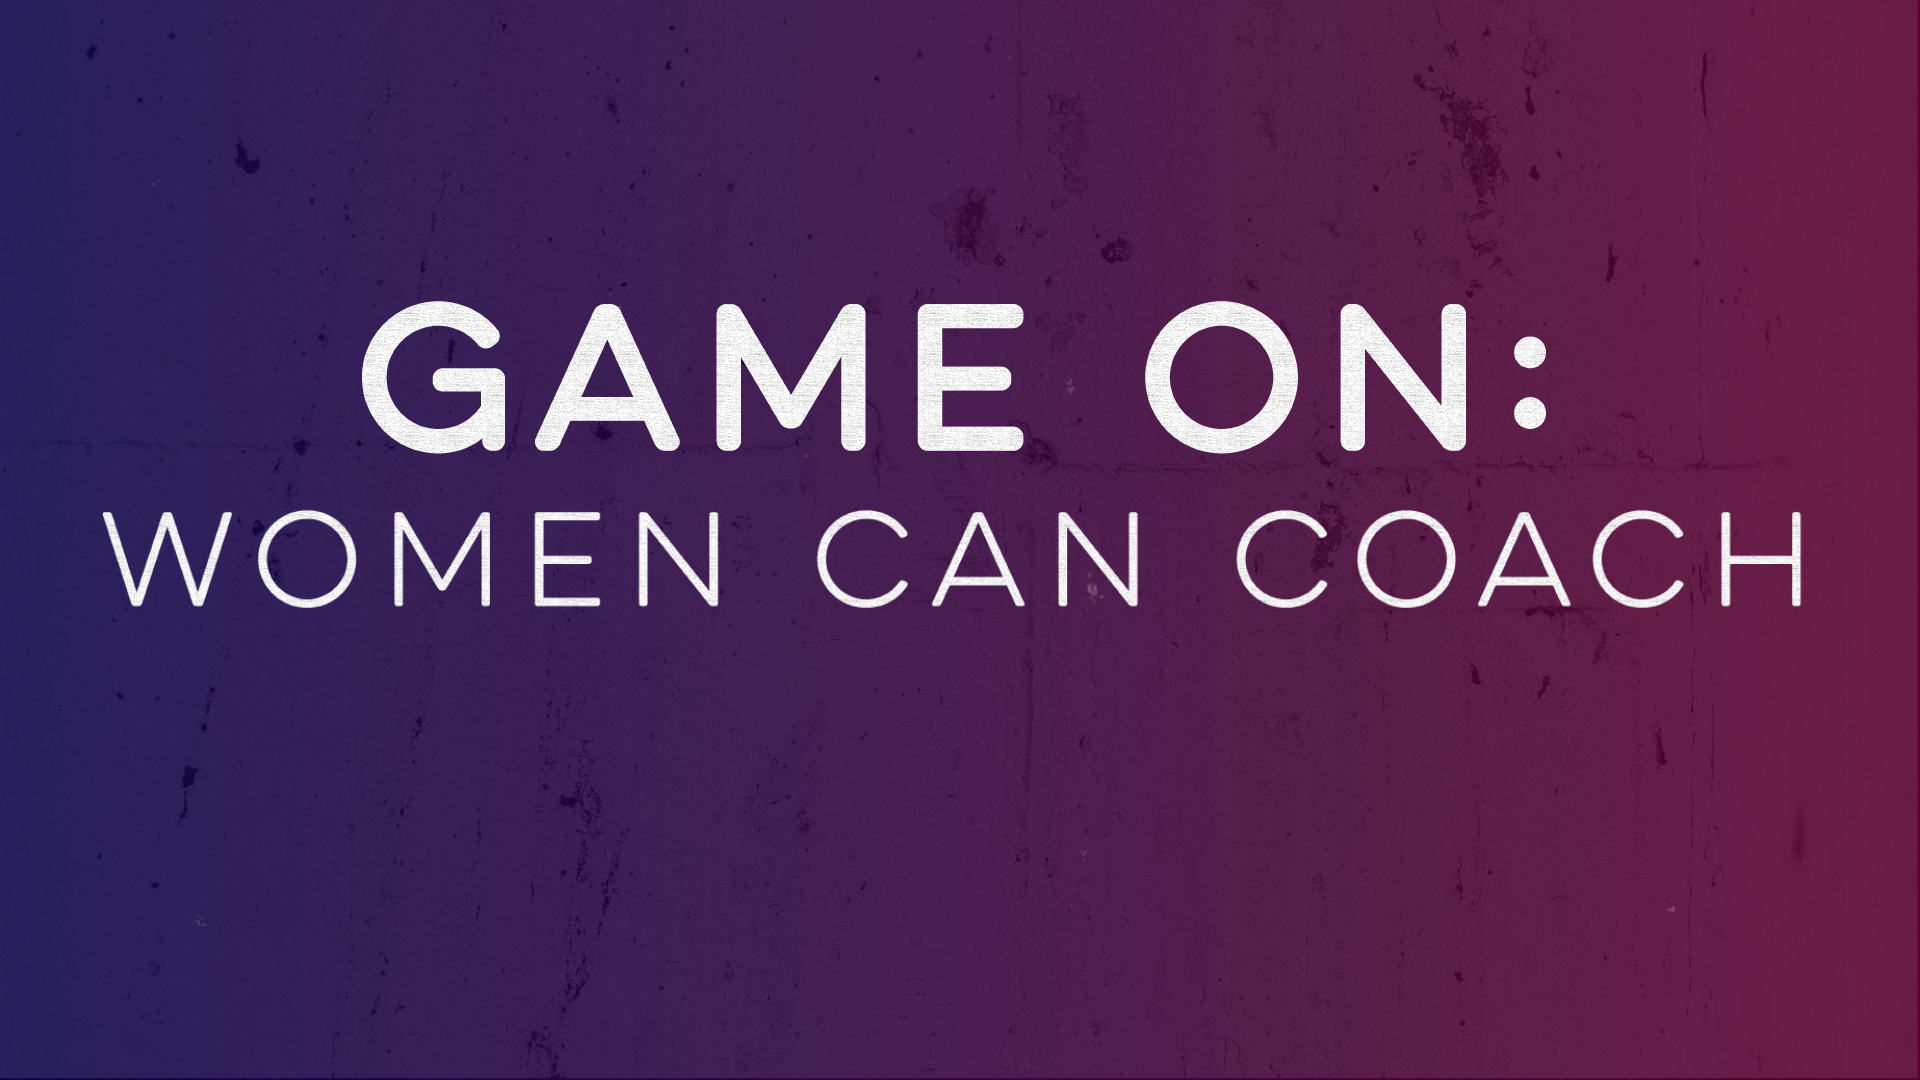 tpt.org - Game On: Women Can Coach - Game On: Women Can Coach